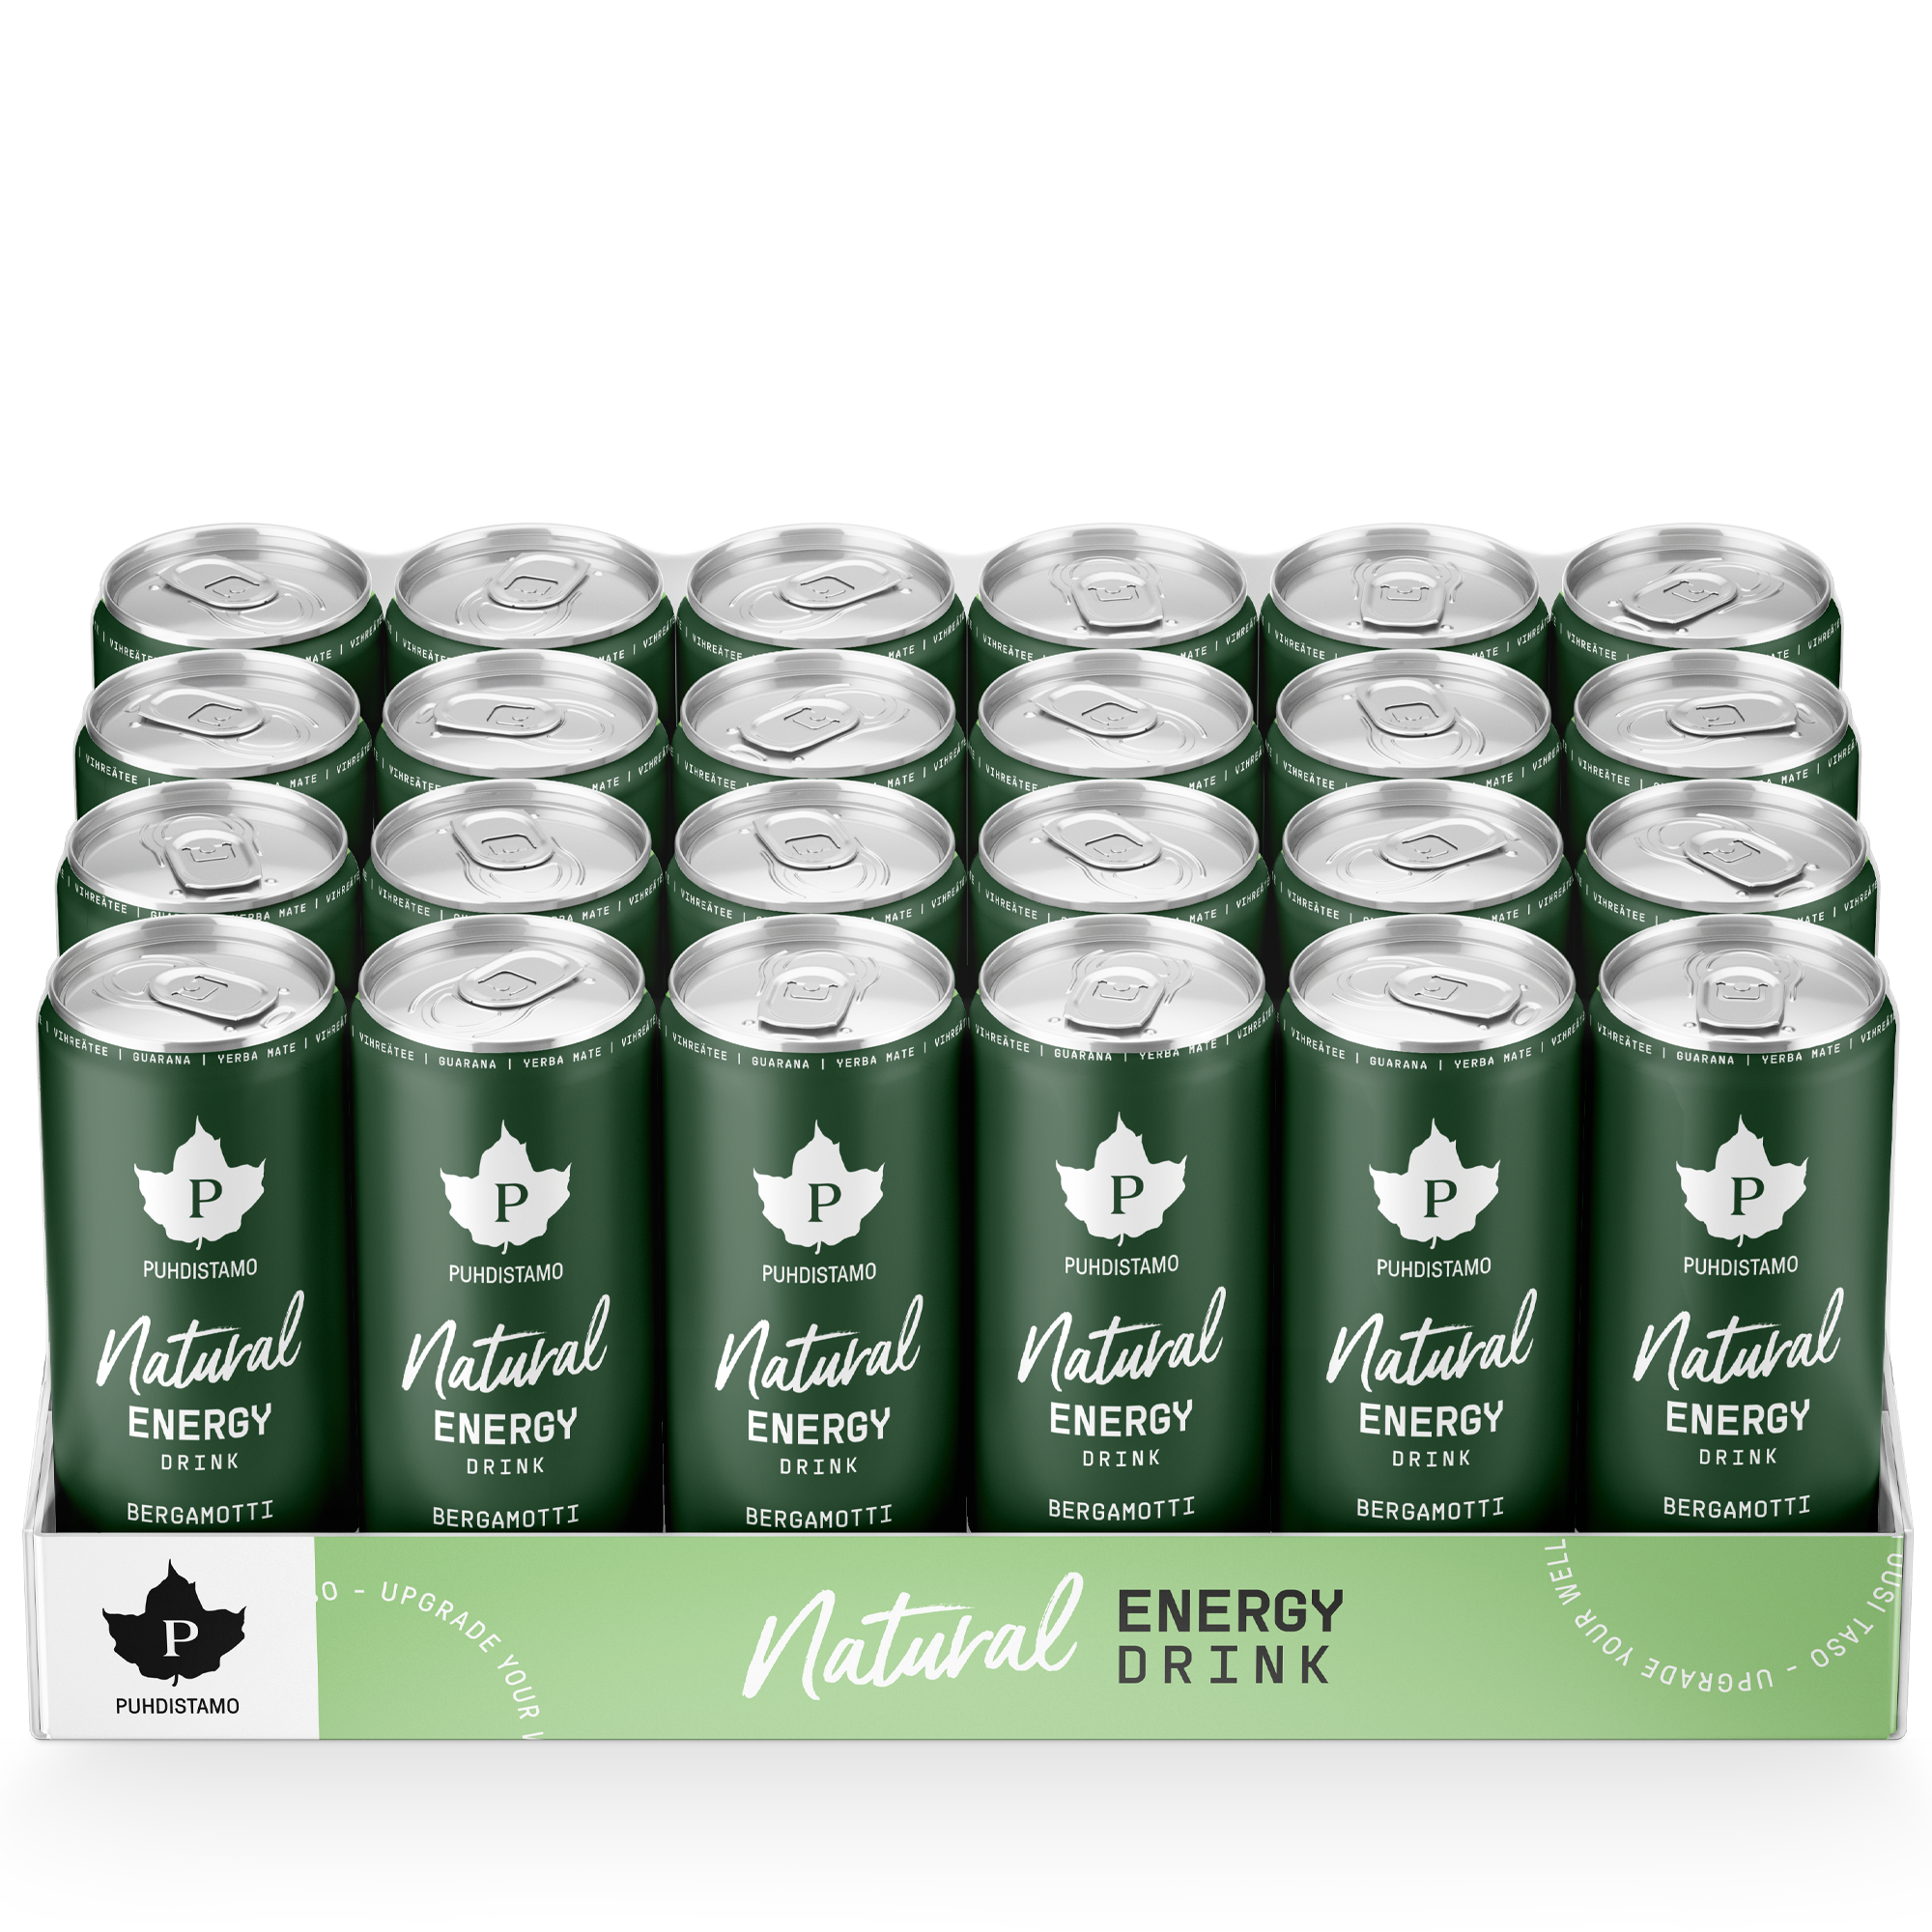 Natural Energy Drink - Bergamotti 24-pack